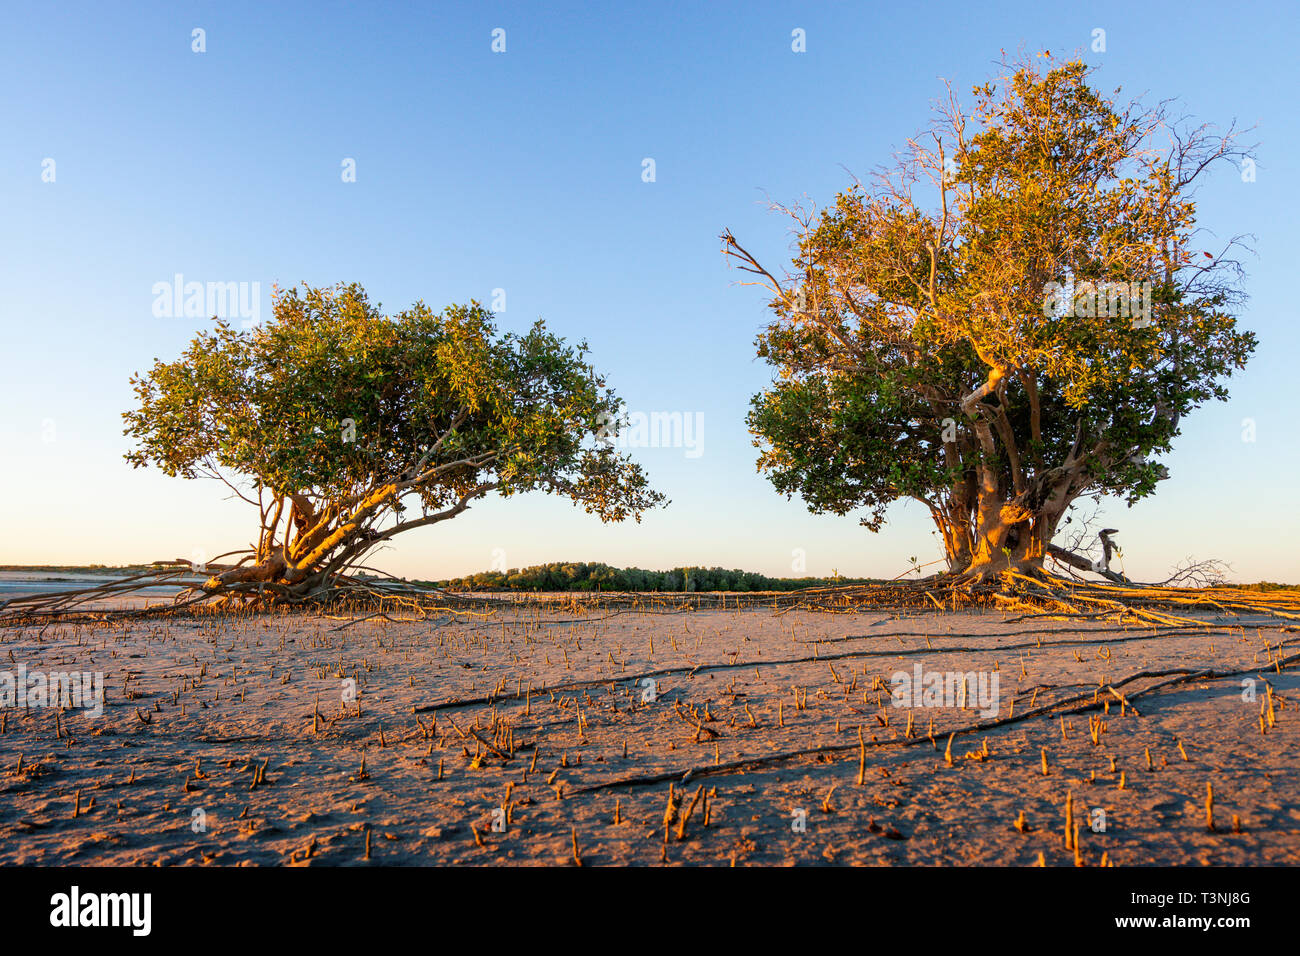 Mangroves growing on sandy tidal flat at Port Smith Western Australia Stock Photo